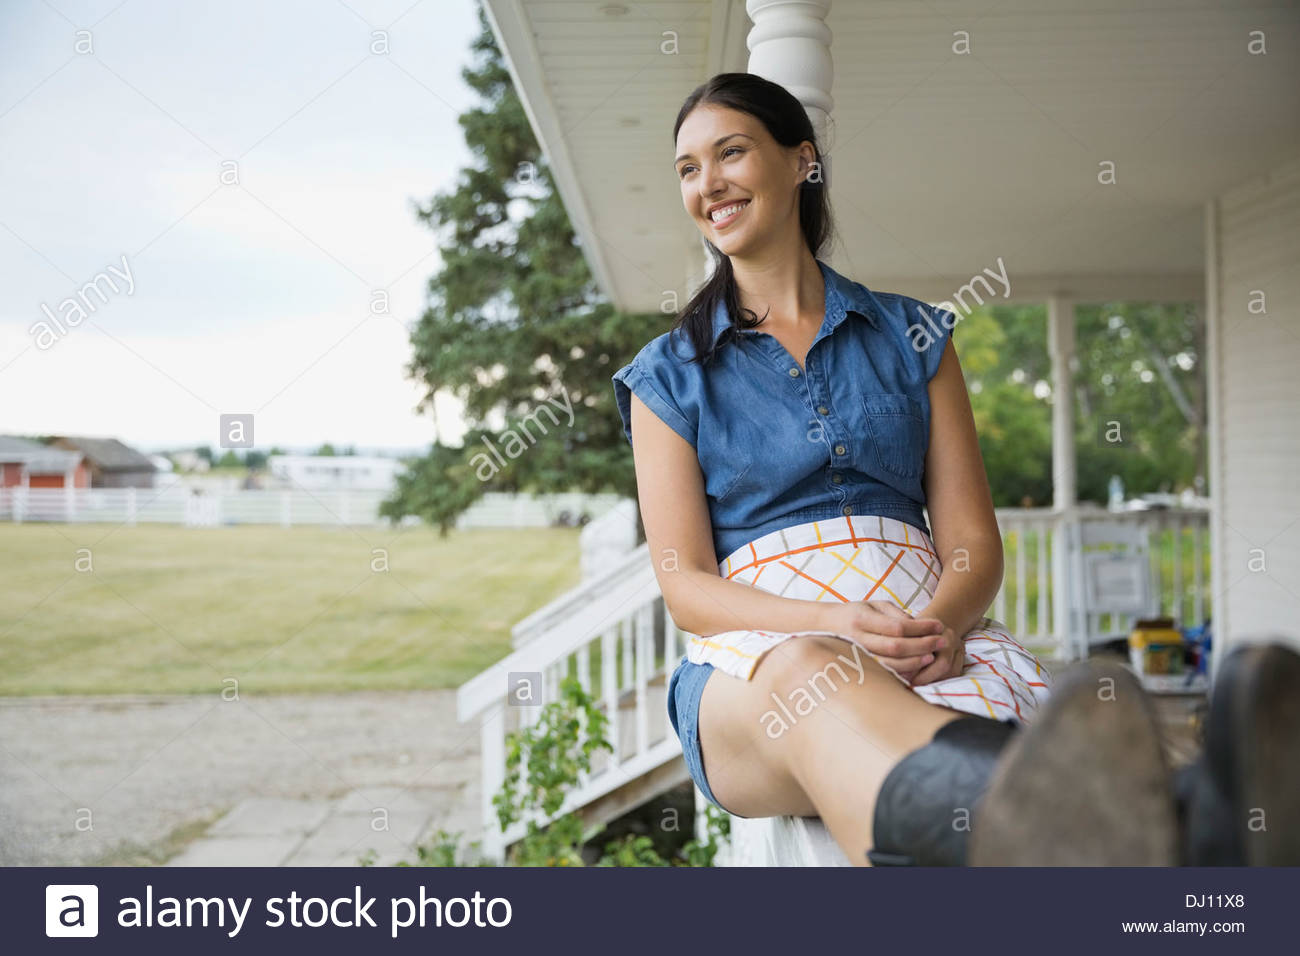 Smiling woman sitting on porch railing - Stock Image